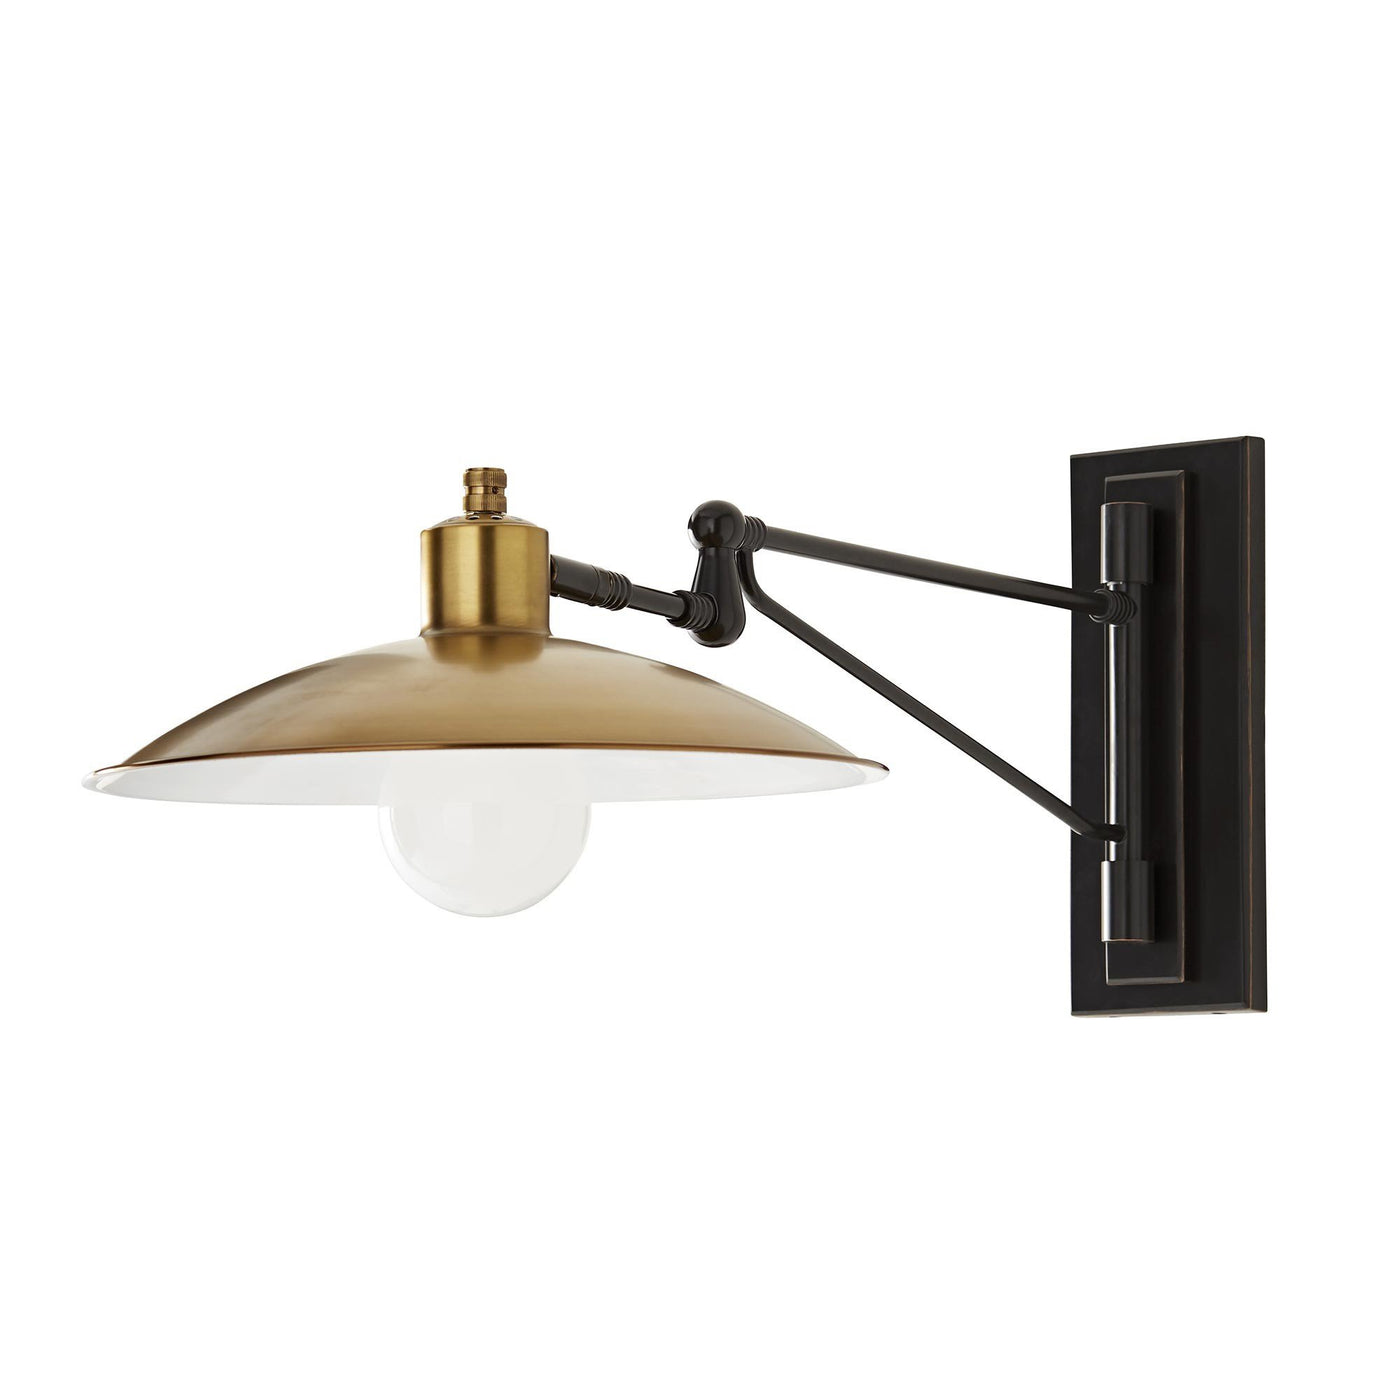 Arteriors Home Nox Sconce Steel Antique Brass Wall Hanging Light